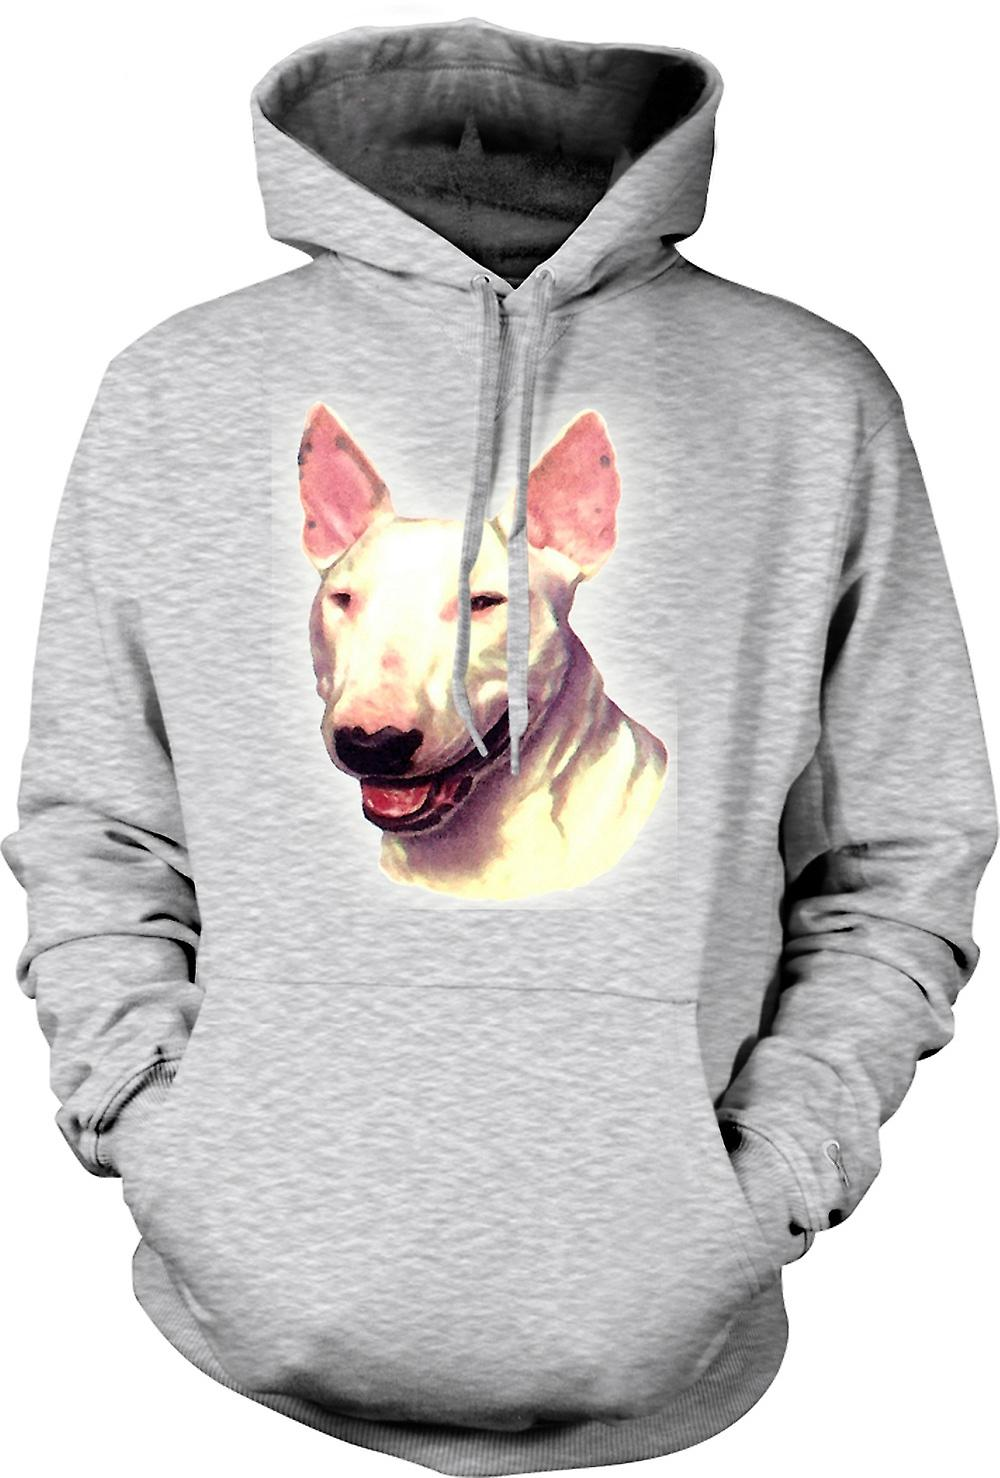 Mens Hoodie - English Bull Terrier - Pet Dog